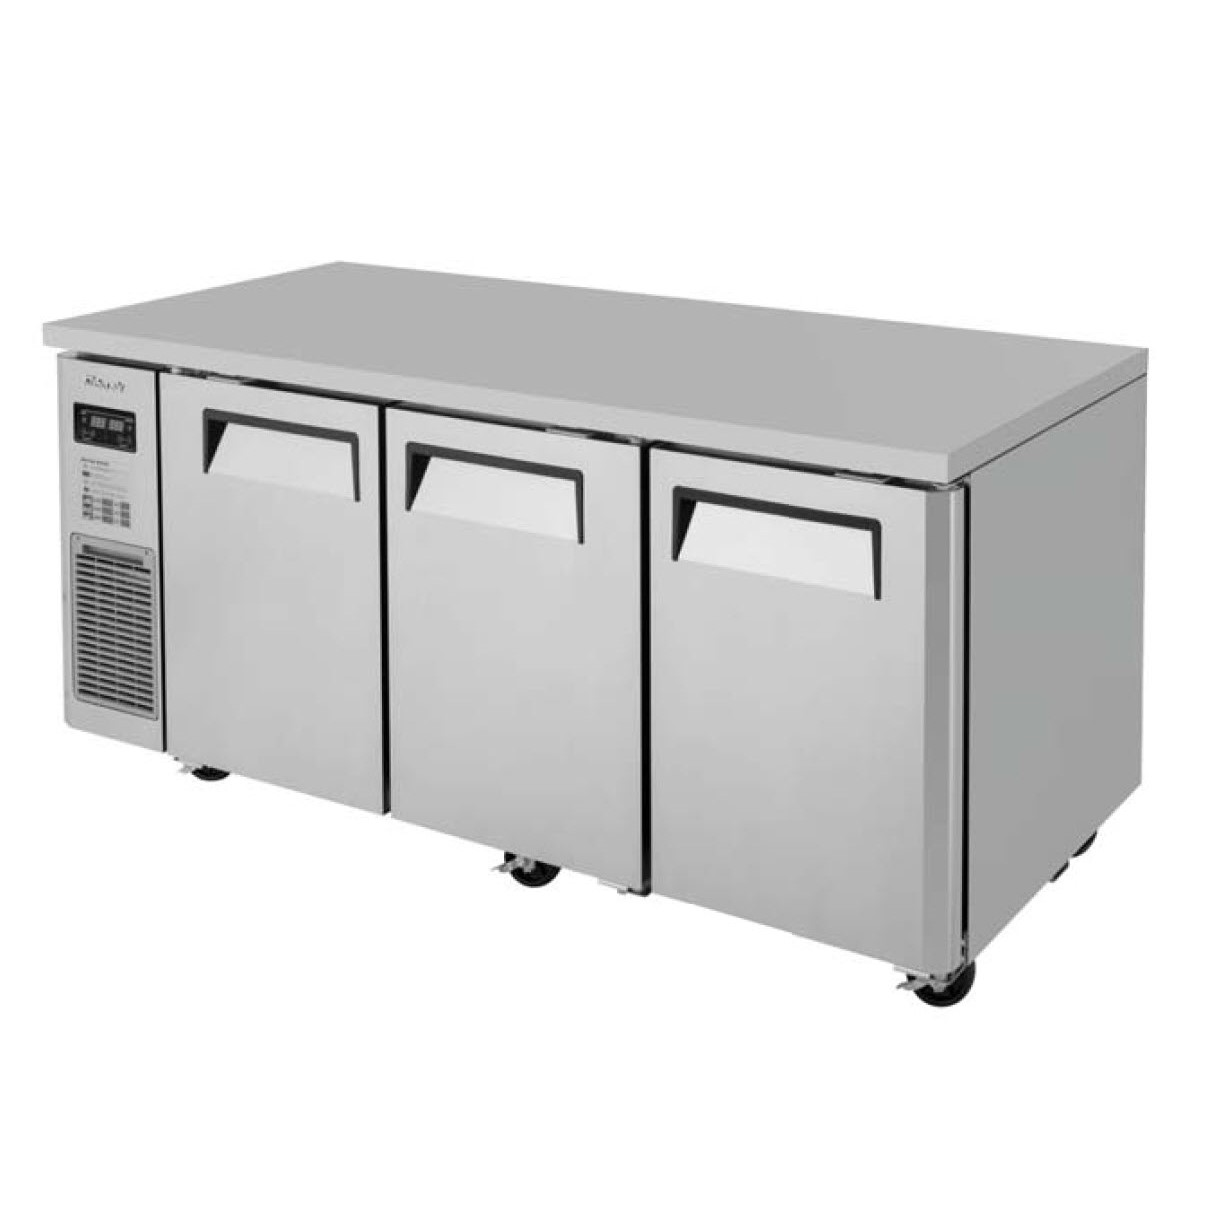 Turbo Air JURF-72-N refrigerator freezer, undercounter, reach-in